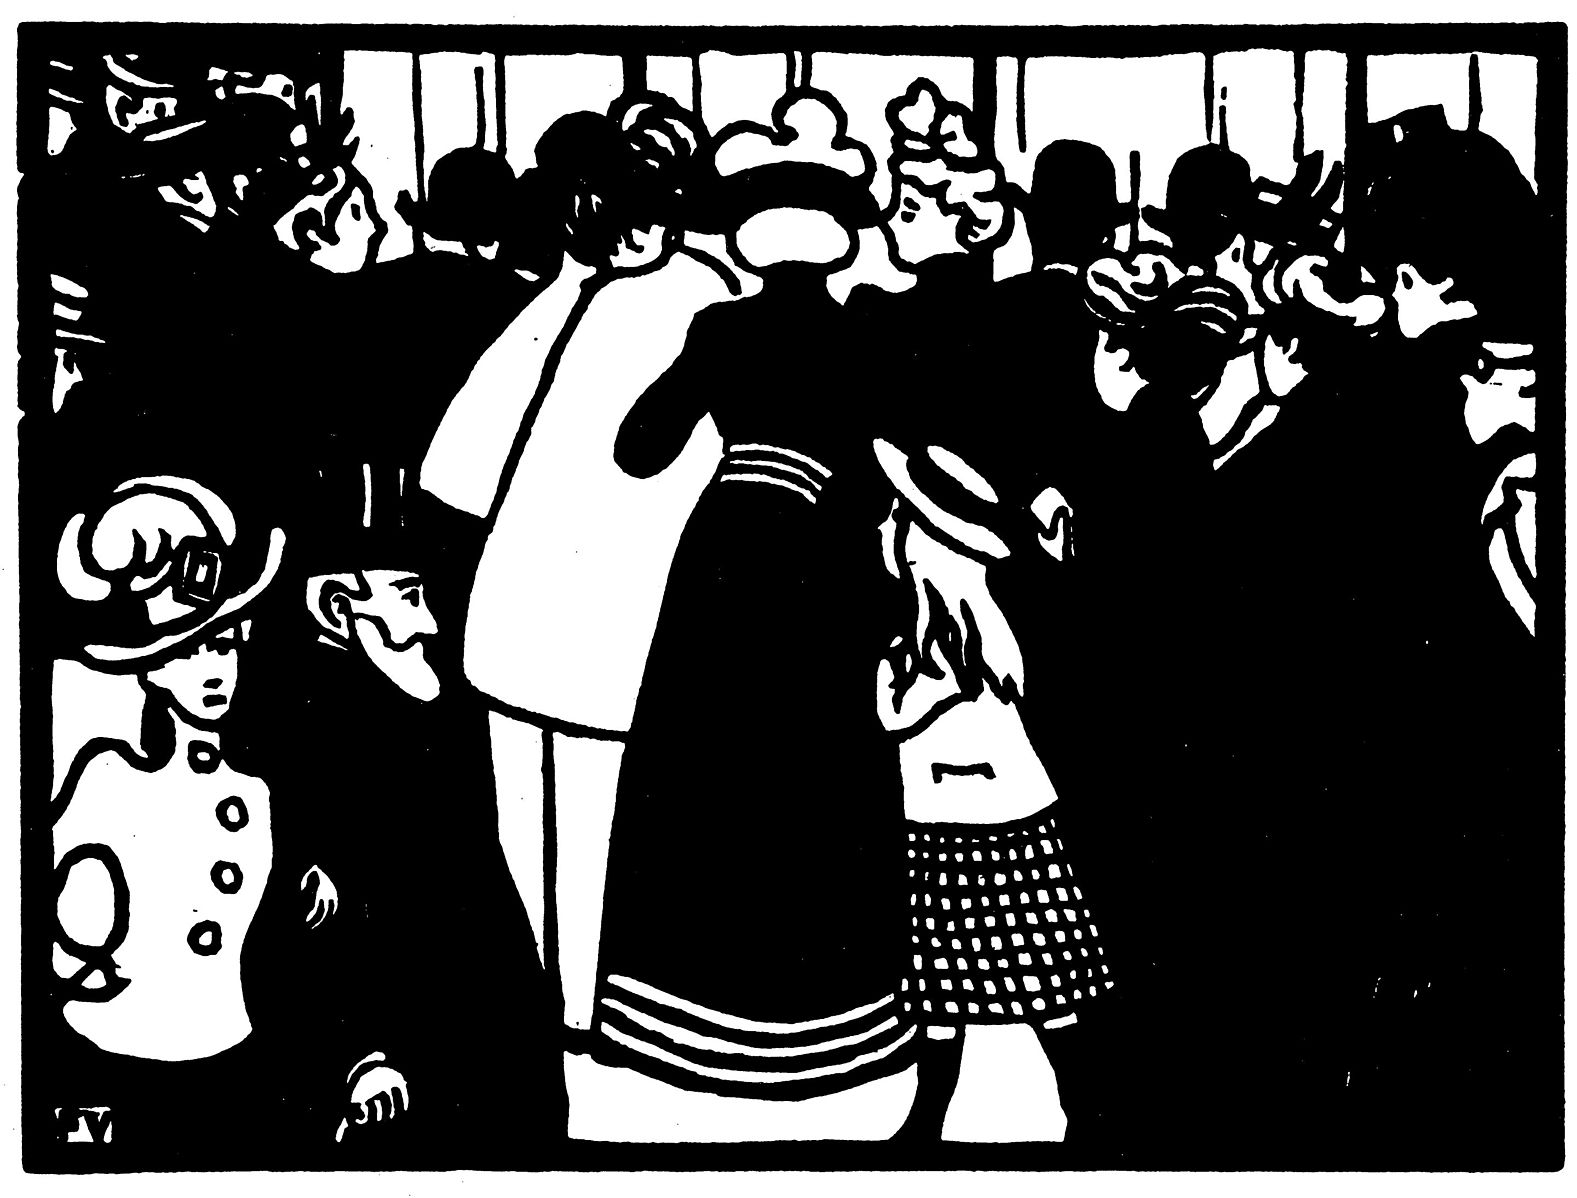 'La vitrine de Lalique' woodcut by Félix Vallotton, 1901 I © Cyrille Largillier / WikiCommons